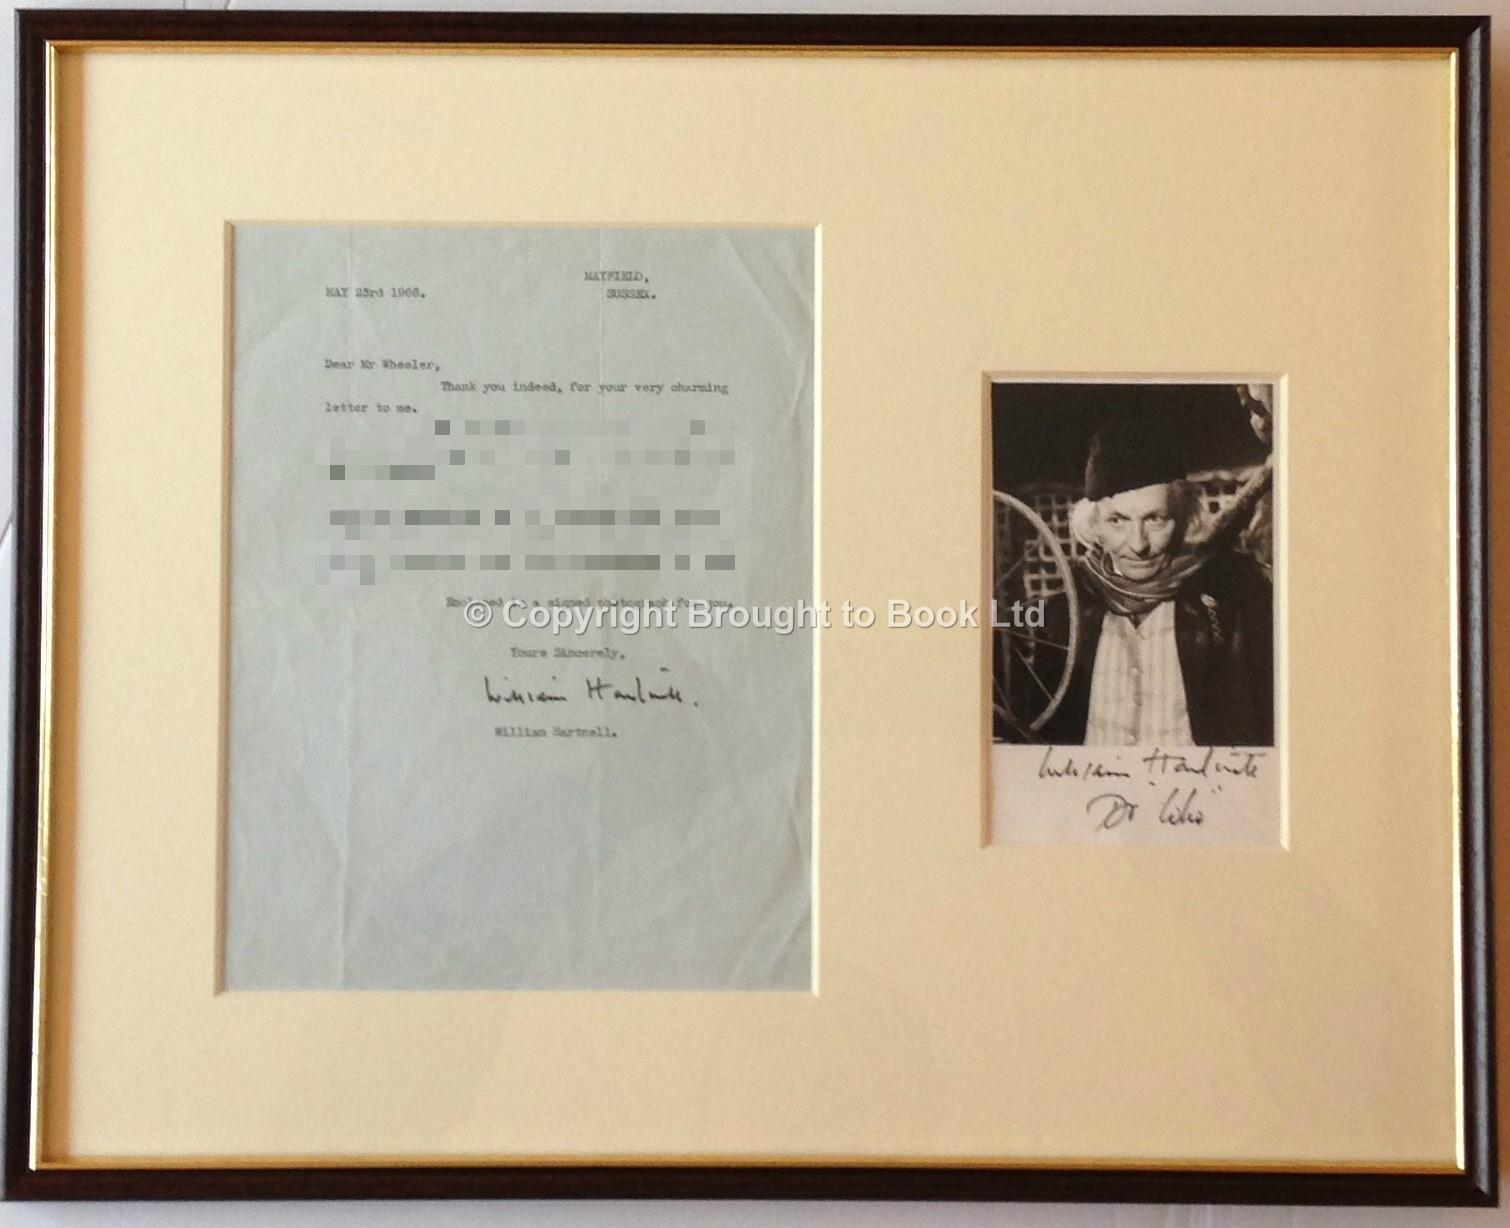 William hartnell signed photograph and letter framed doctor who william hartnell signed photograph and letter framed doctor who autograph william hartnell jeuxipadfo Choice Image